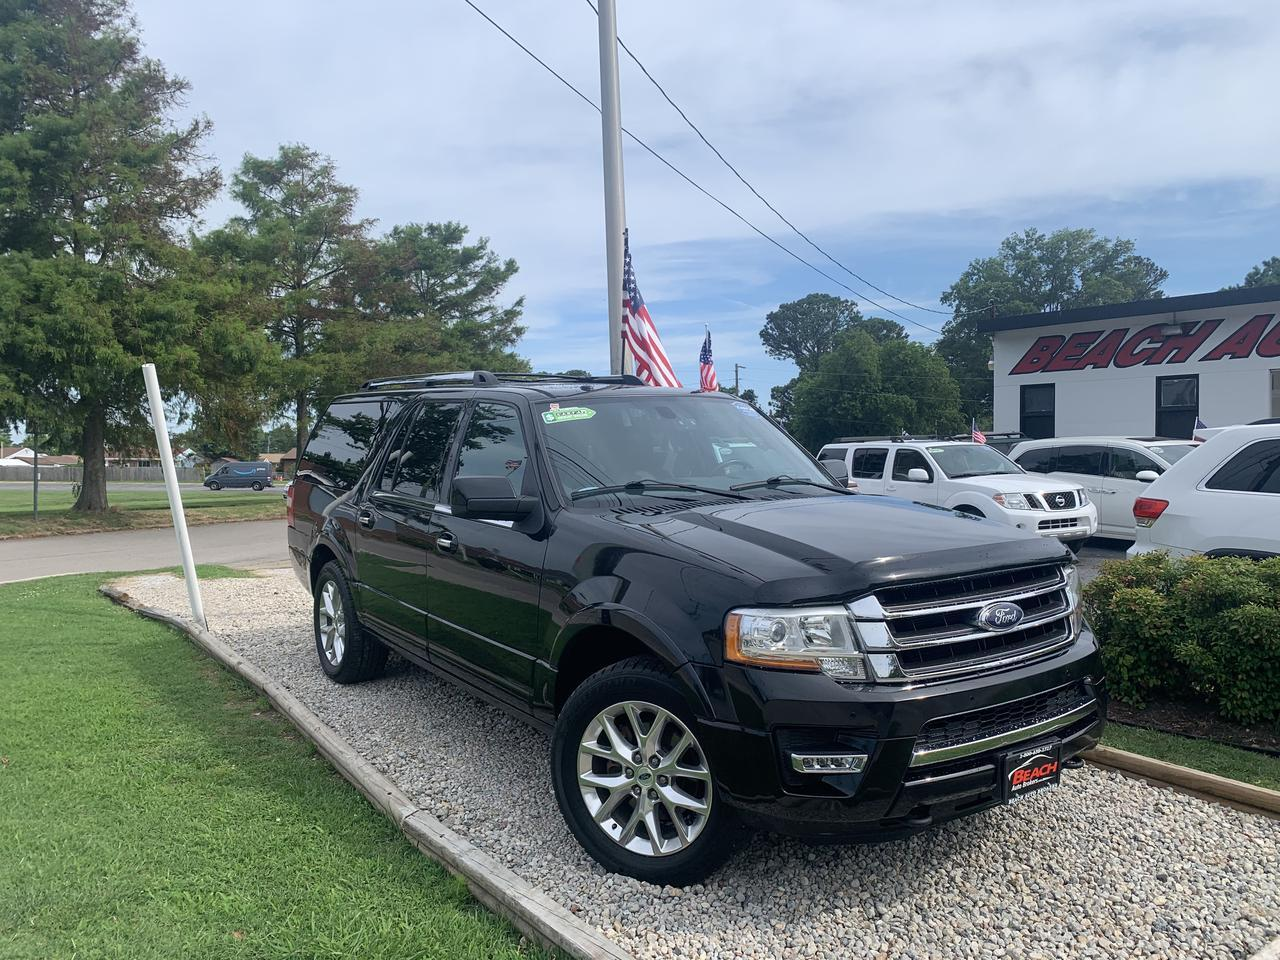 2015 FORD EXPEDITION EL LIMITED 4X4, WARRANTY, LEATHER, SUNROOF, NAV, 3RD ROW, HEATED SEATS, CLEAN CARFAX! Norfolk VA